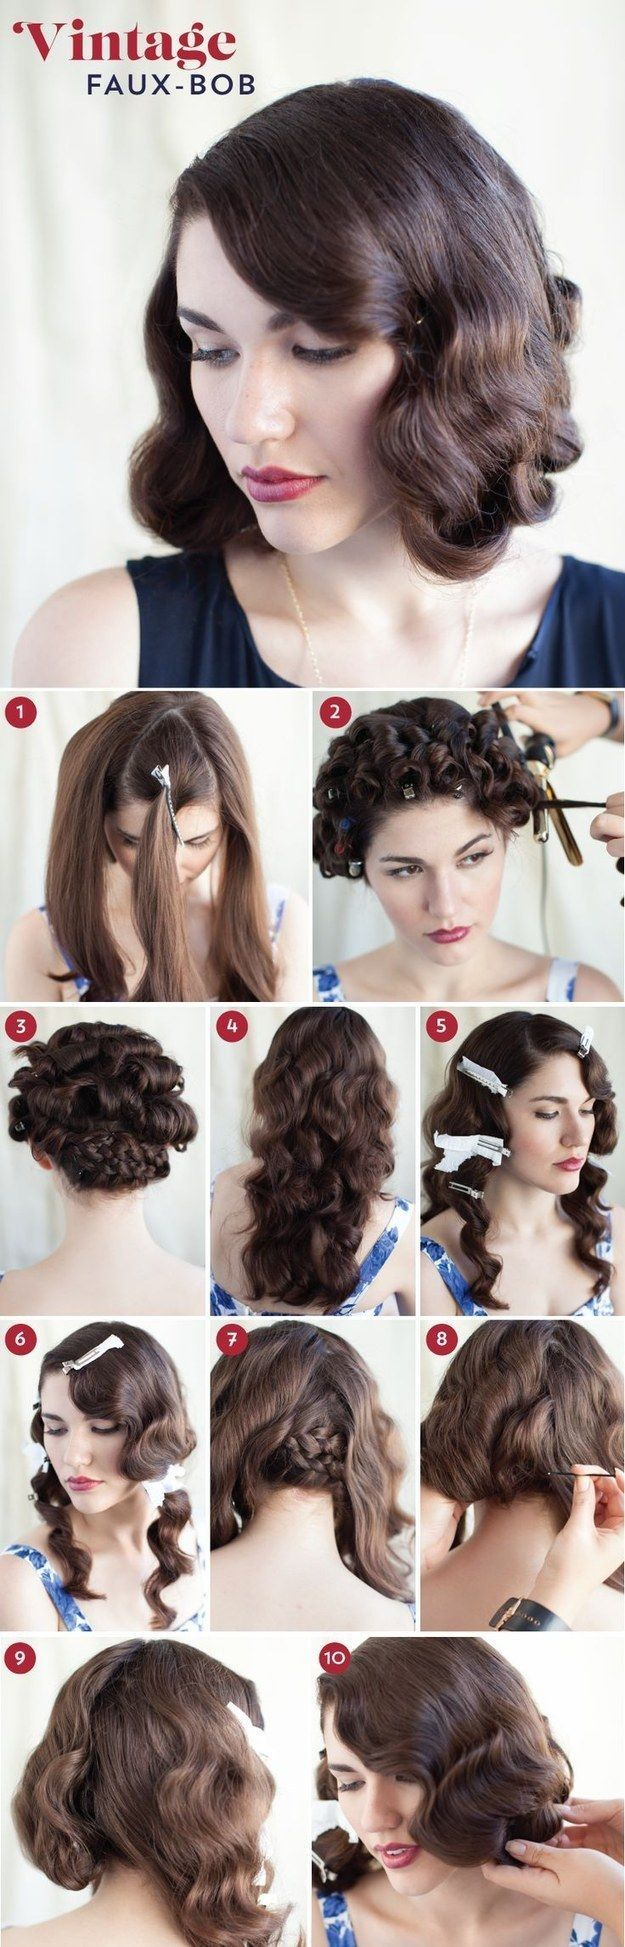 From the downright famous to super sexy, these 30 vintage hair styles are totally hot! Check out these beautiful vintage hairstyles bellow and follow the guides to create your favorite hair styles by yourself at home! Vintage Hairstyle Tutorial for long hair: Old Hollywood Giant Roller Waves toritutorial.com Hot rollers are magic. Get the tutorial[Read the Rest]